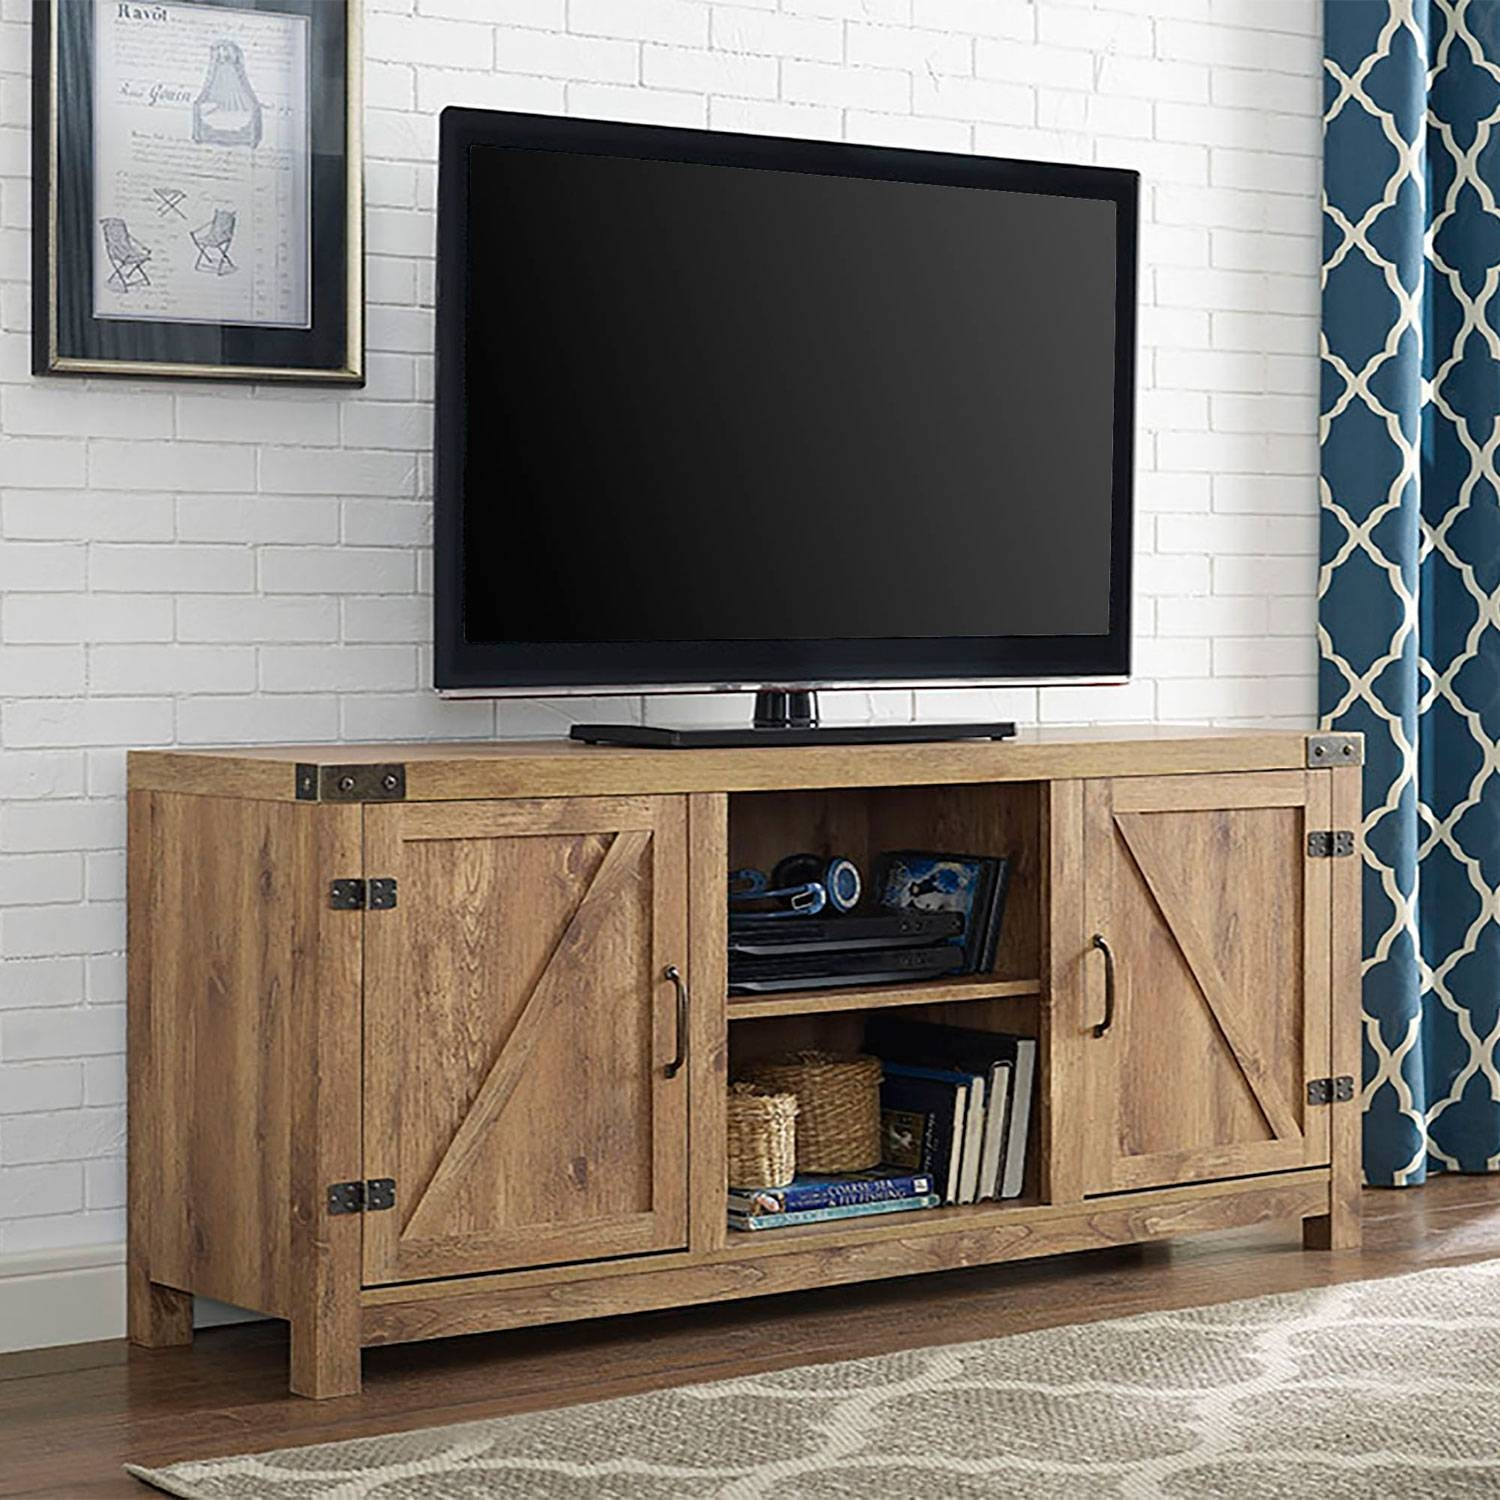 Tv Stands & Cabinets On Sale | Bellacor for Cabinet Tv Stands (Image 10 of 15)